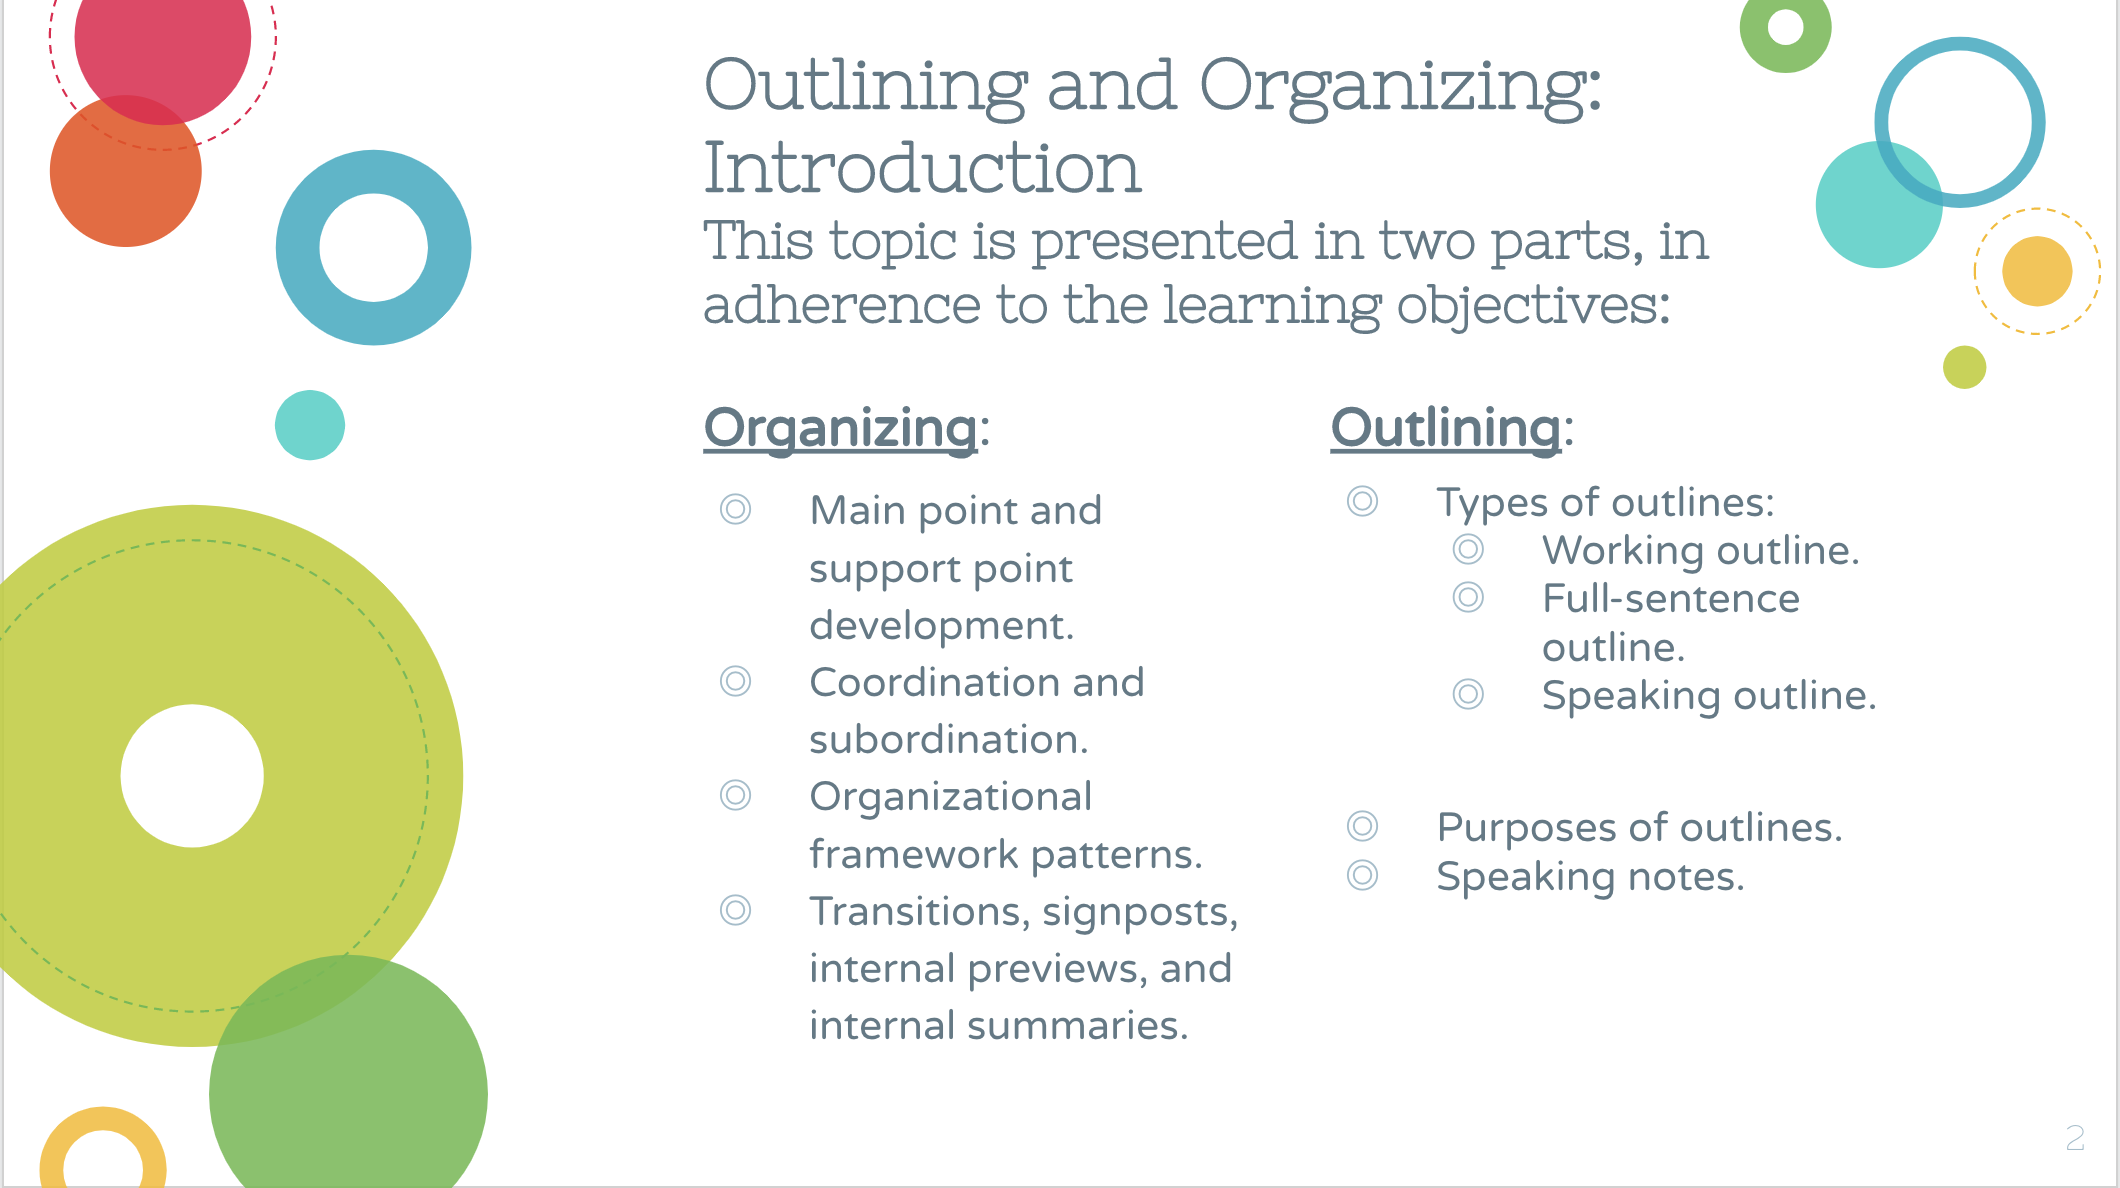 Sample Slide from Outlining & Organizing